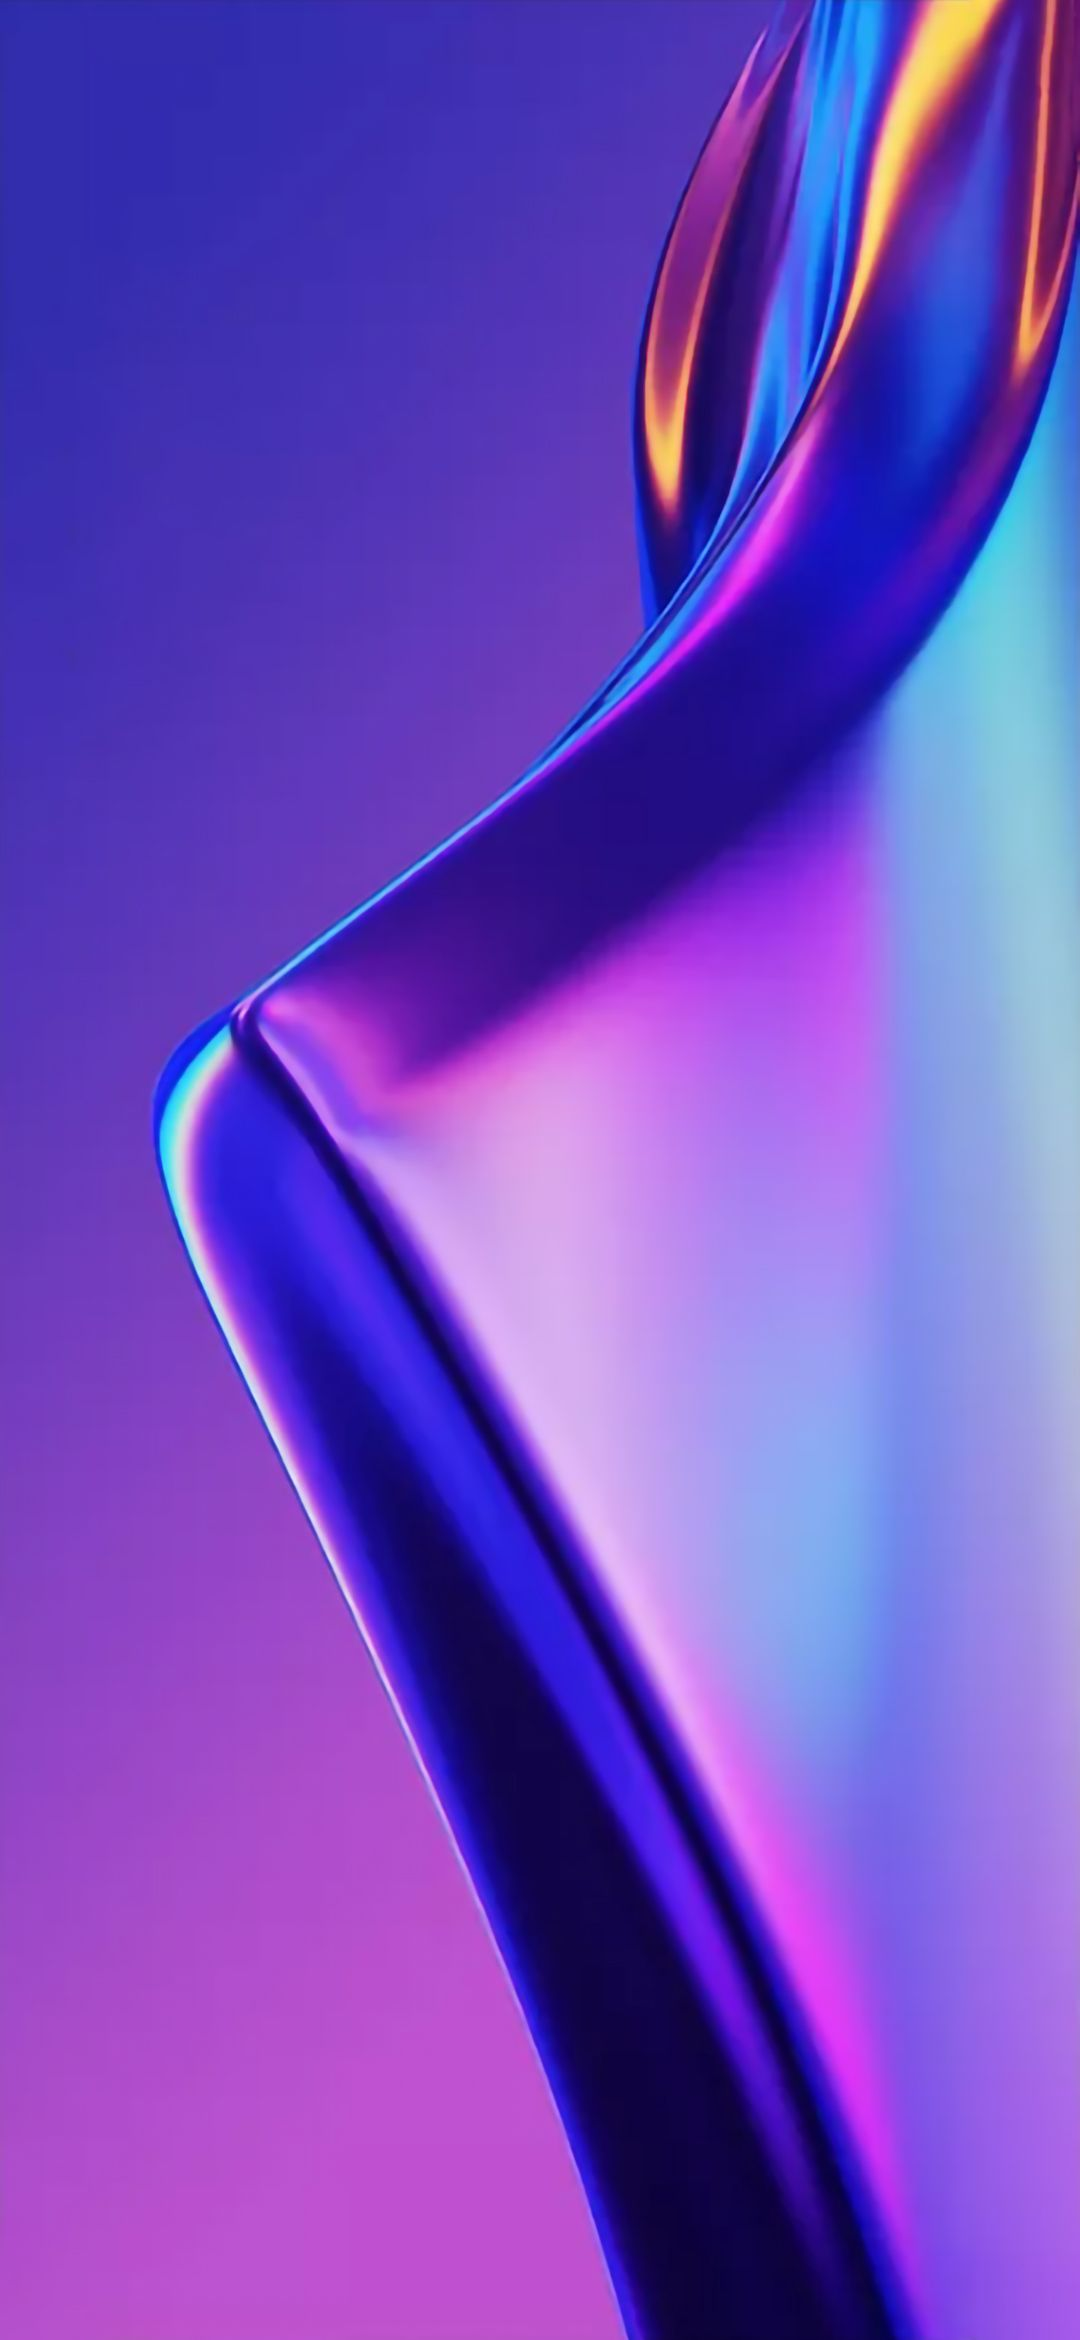 Download Oppo K3 Official Wallpaper Here Full HD Resolution